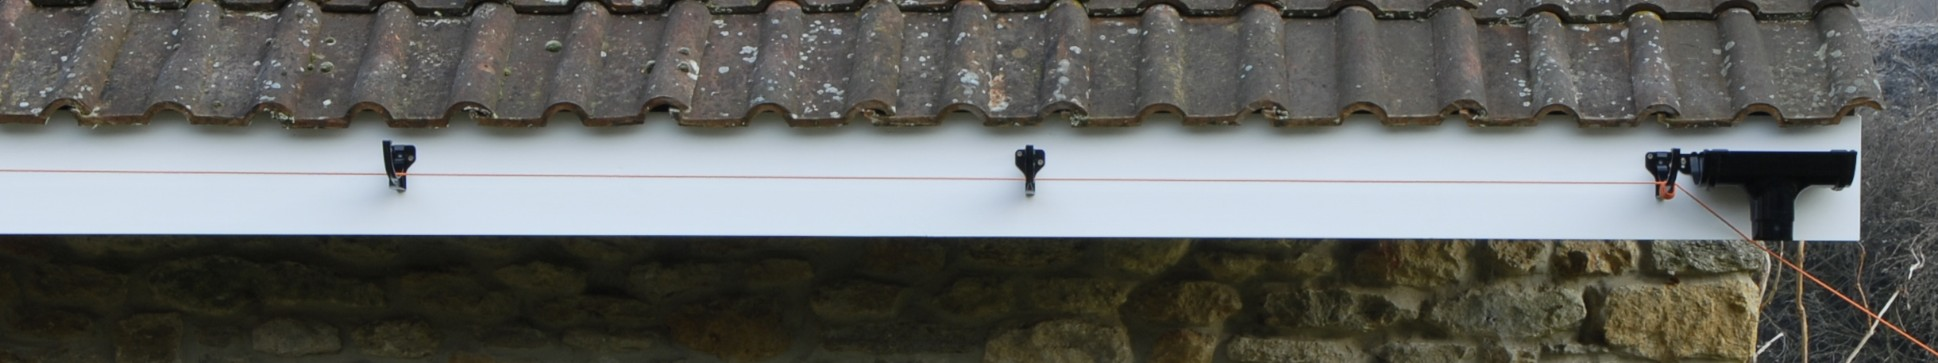 Gutter clips in place